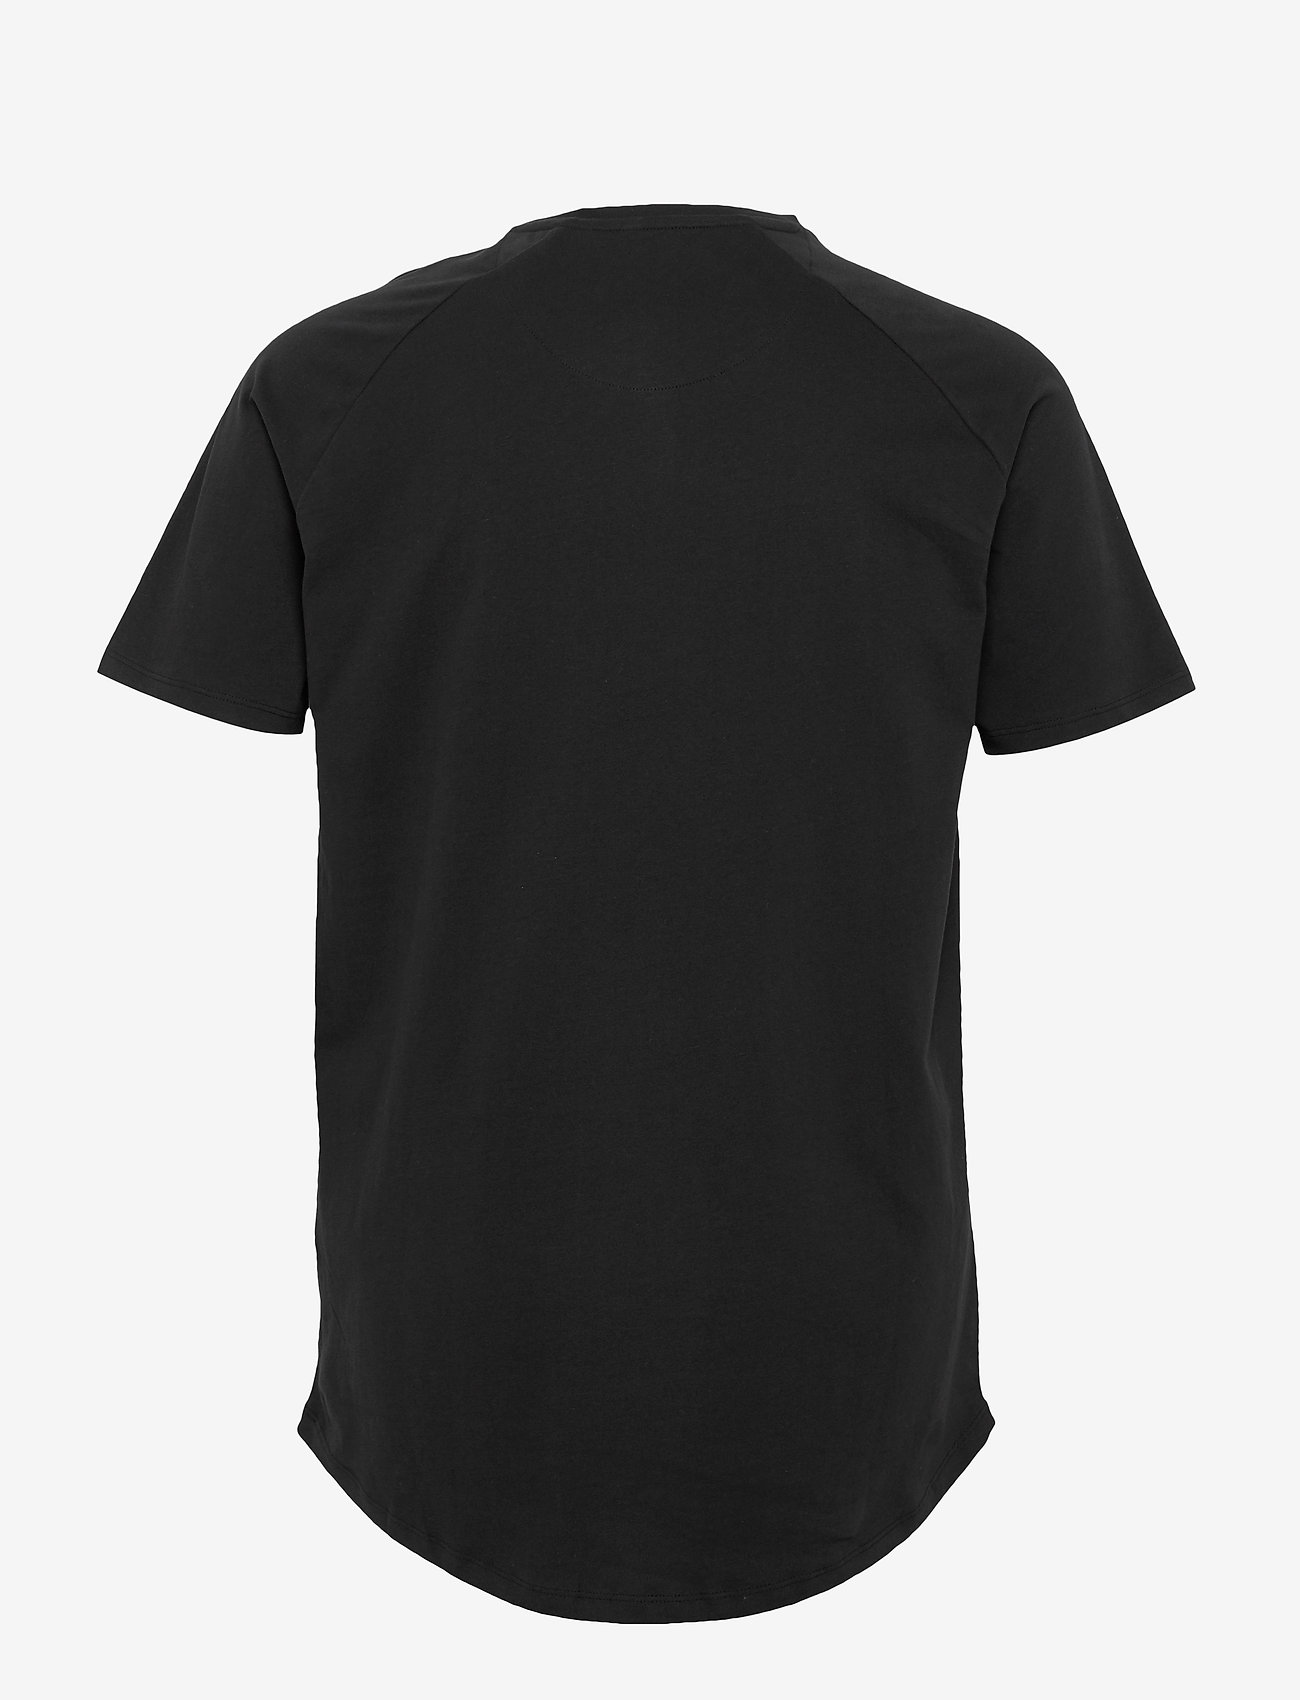 Jack & Jones - JJECURVED TEE SS O-NECK - basic t-shirts - black - 1